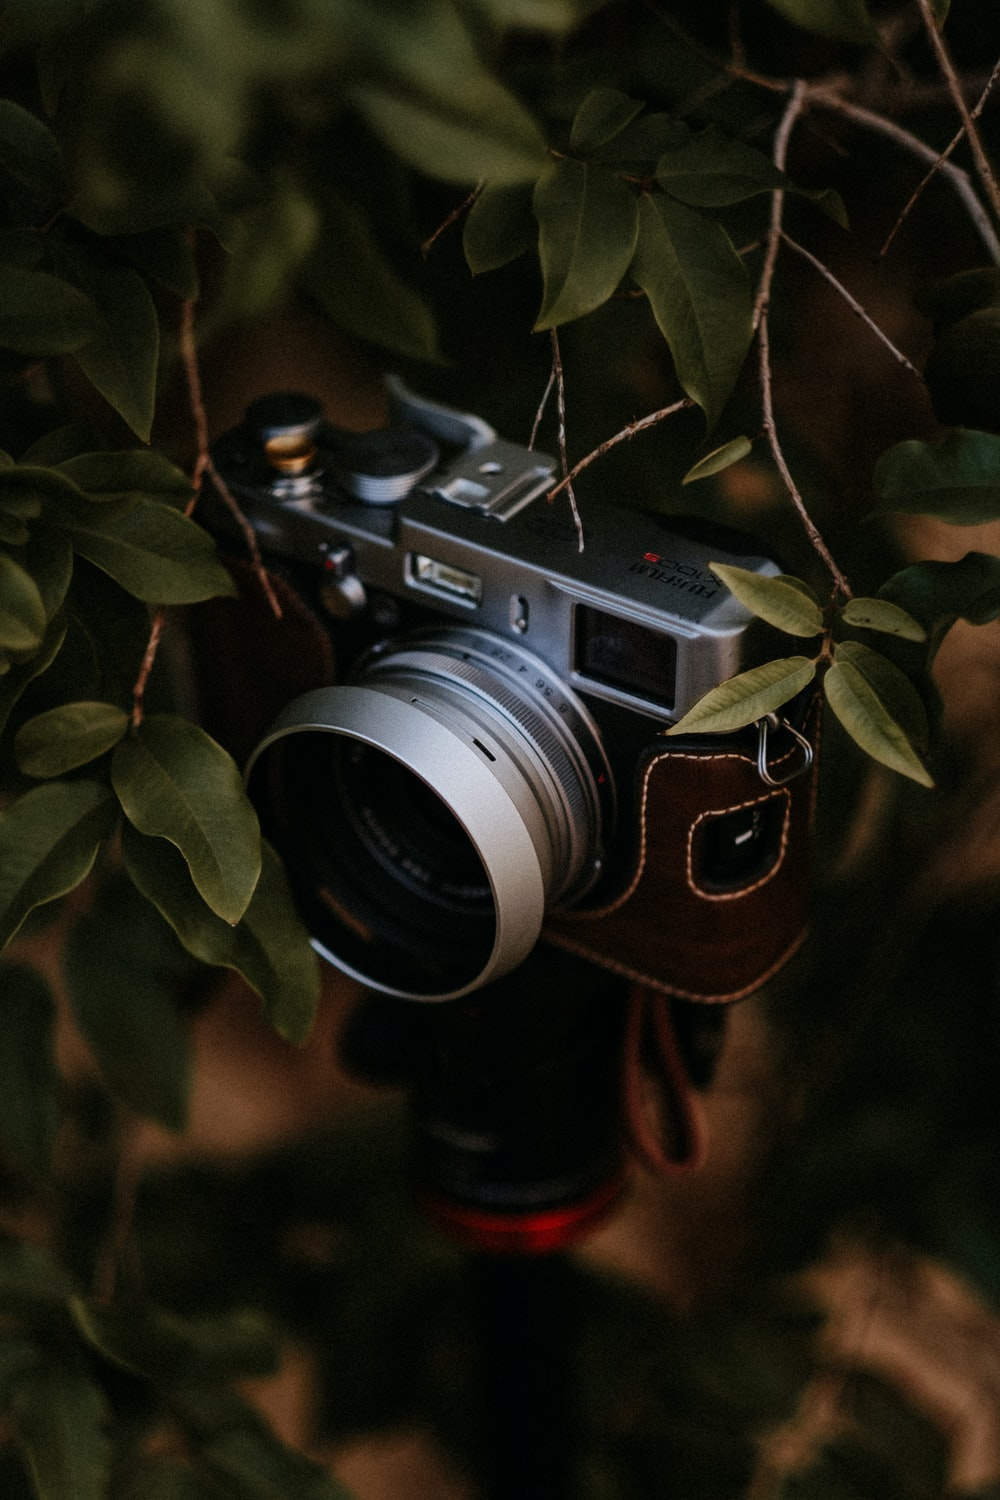 black and silver nikon camera on green leaves